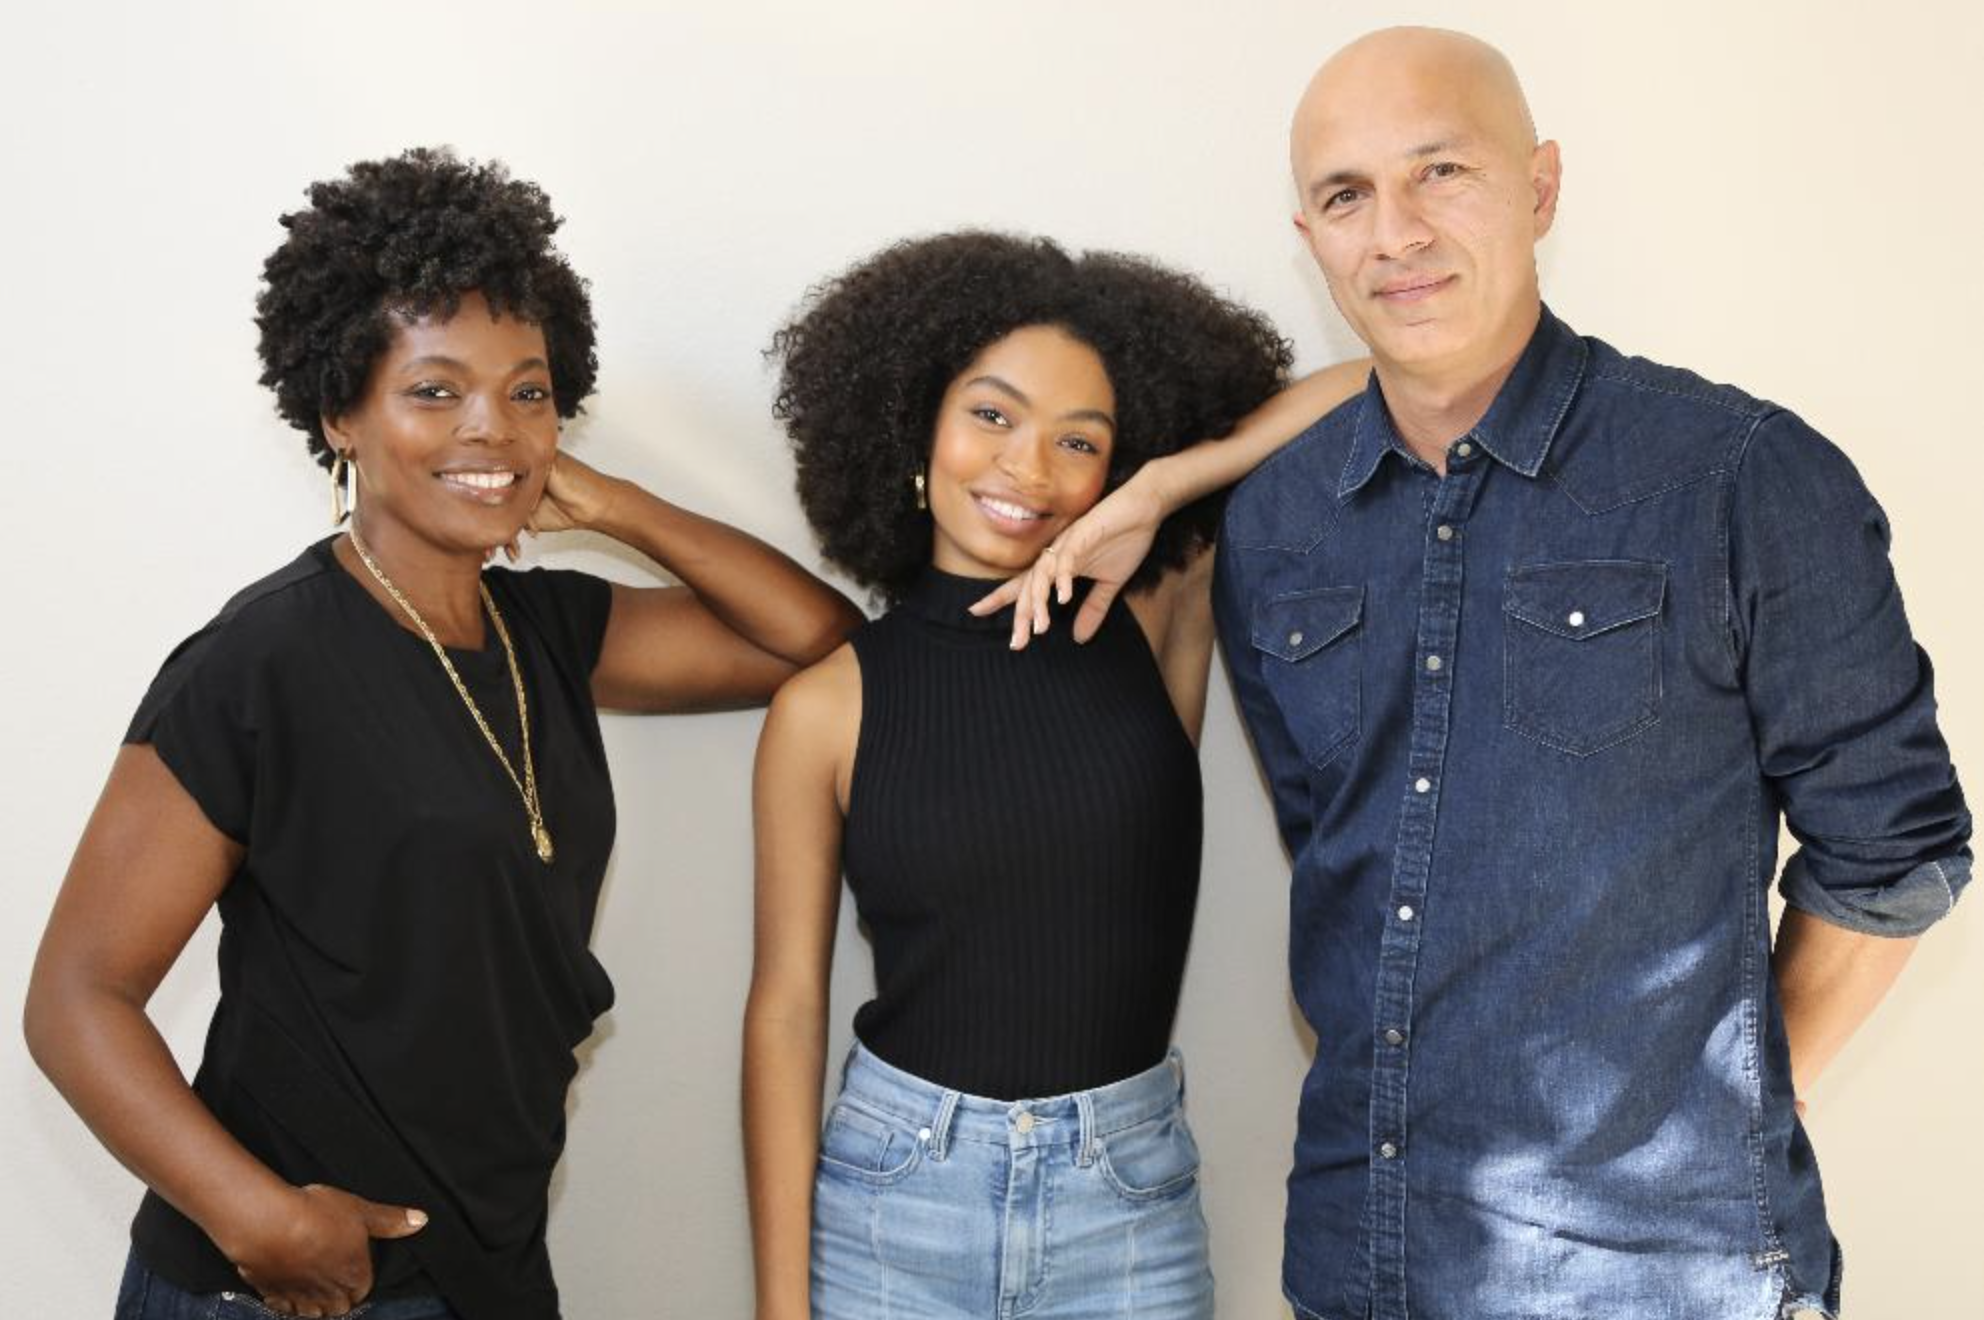 """THE FAMILY SHAHIDI   WHEN ACTOR YARA SHAHIDI TURNED 16, HER PARENTS WERE INFORMED THAT THEY NO LONGER HAD TO SUPERVISE HER ON THE SET OF THE ABC SITCOM   BLACK-ISH  , ON WHICH SHE HAS STARRED SINCE AGE 14. HER MOTHER KERI SHAHIDI WASN'T HAVING IT. """"FOR US TO PROVIDE YOU WITH A HAPPY, HEALTHY, WELL-ROUNDED HUMAN BEING, THIS IS WHAT WE DO,"""" SHE REMEMBERS RESPONDING. THE WHOLE ENDEAVOR HAS BEEN A FAMILY EFFORT, AND ALL THREE SHAHIDIS—YARA, KERI AND FATHER AFSHIN SHAHIDI—SAT DOWN WITH TIME TO TALK ABOUT HOW THEY WORK AS A TEAM TO SUPPORT YARA IN HOLLYWOOD, THEIR RESPONSE TO SEXUAL HARASSMENT WITHIN THE INDUSTRY AND YARA'S FORTHCOMING TRANSITION INTO A NEW ROLE:  COLLEGE STUDENT  AT HARVARD."""